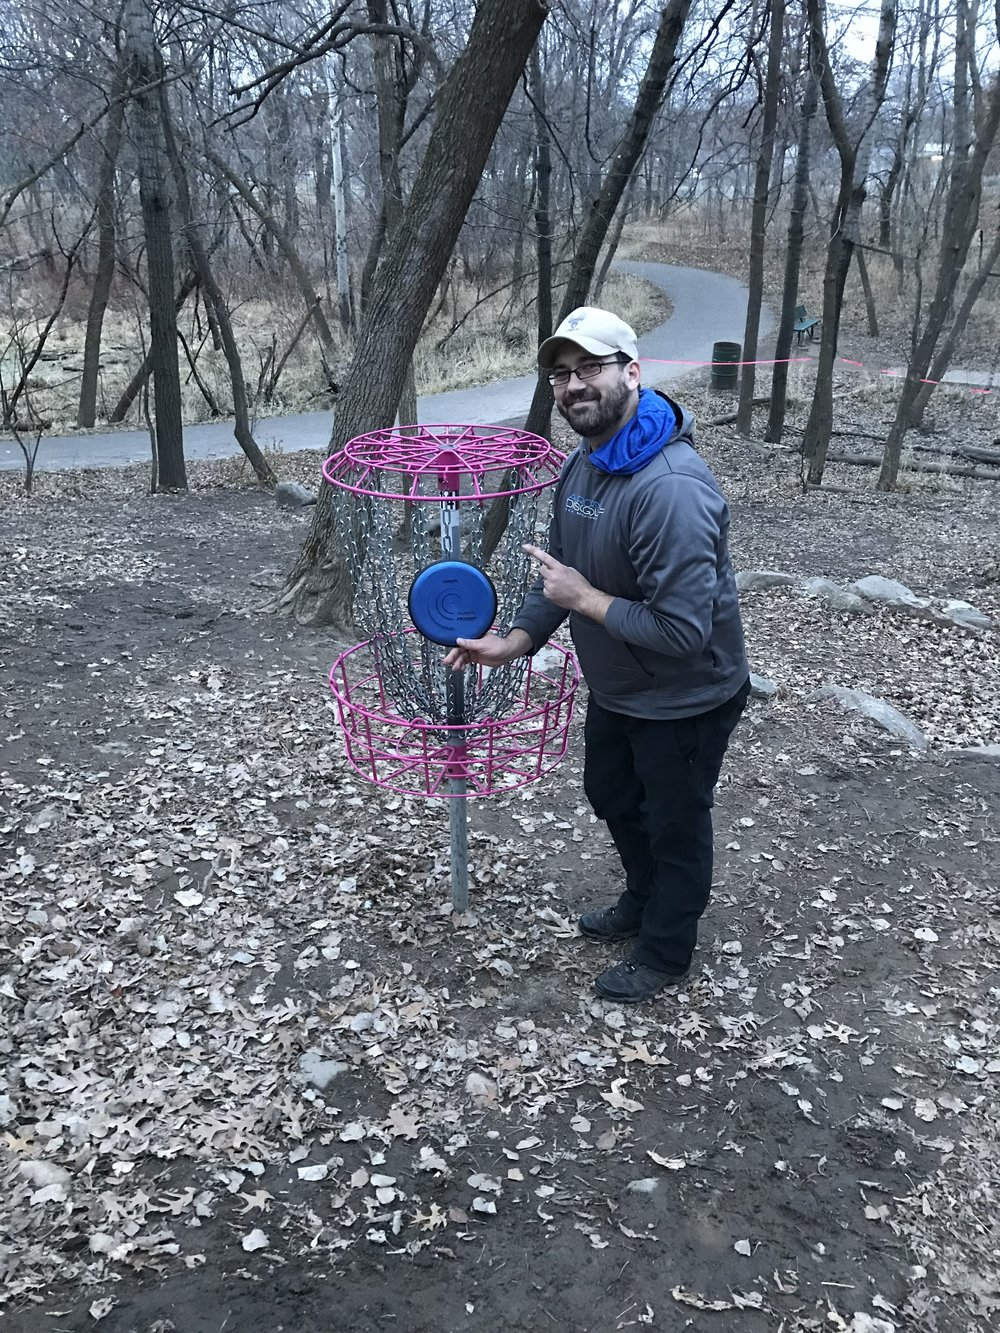 Aaron Palm with an Anode ace on hole 14 at Acorn Disc Golf Park in Roseville, MN.